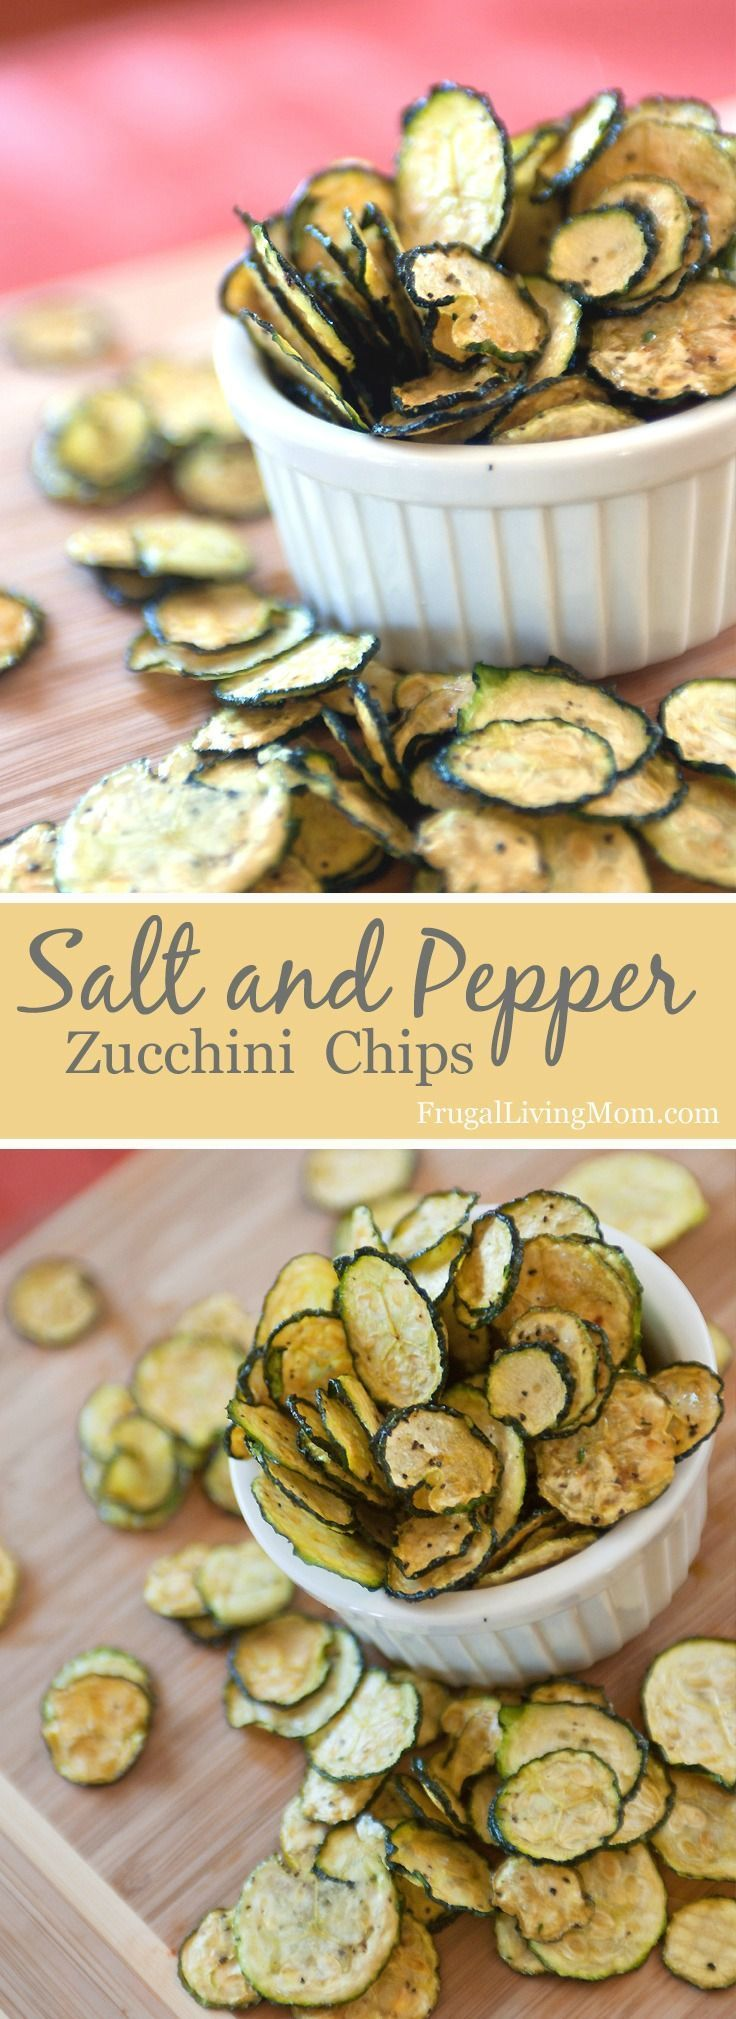 Salt and Pepper Zucchini Chips!  Super yummy and healthy.  You can make these with a dehydrator or in the oven. #snacks